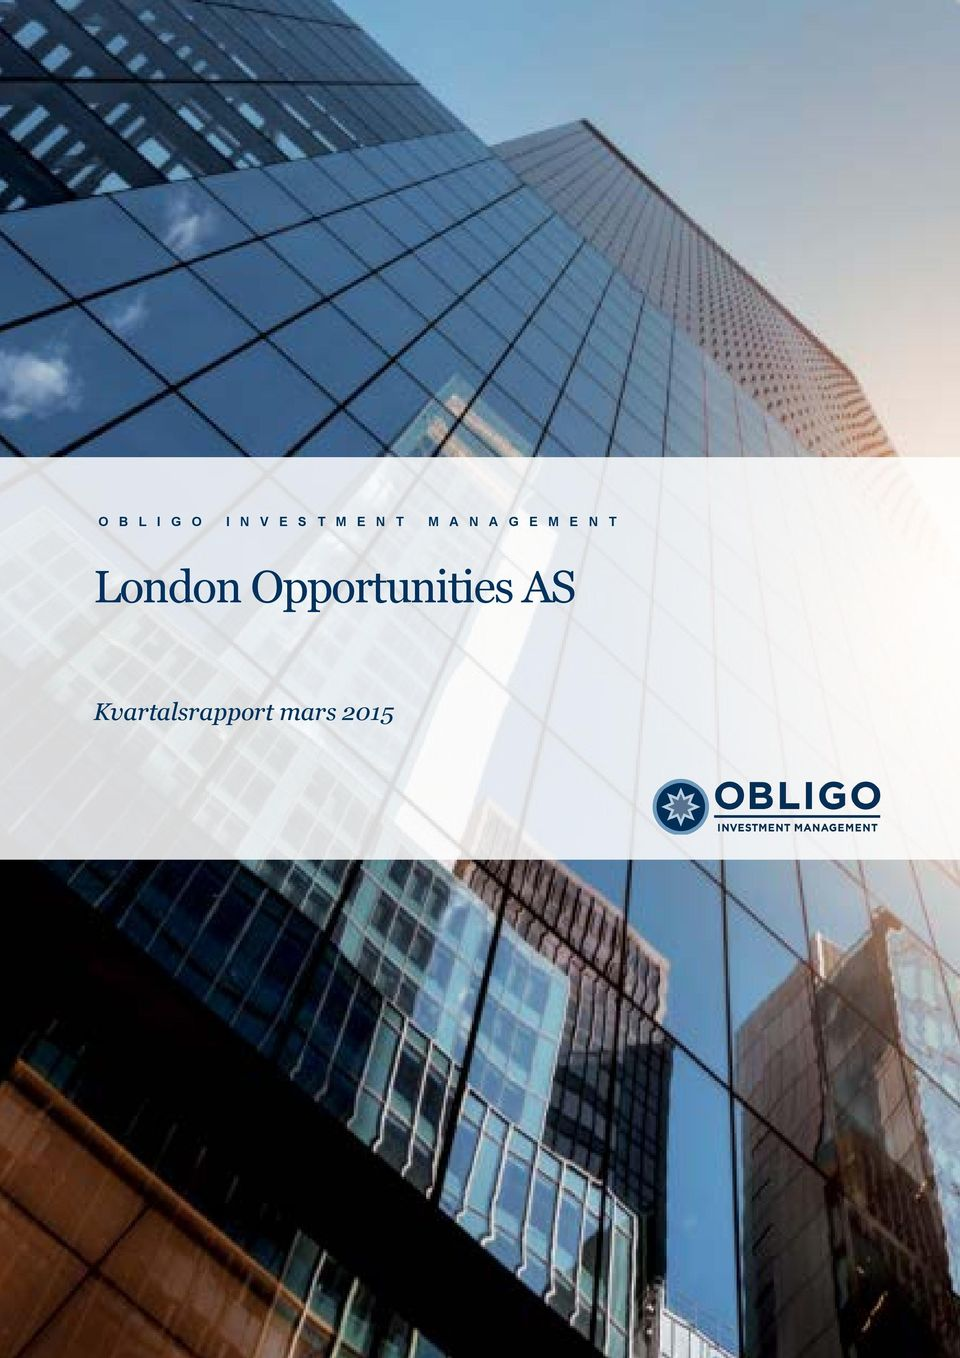 London Opportunities AS